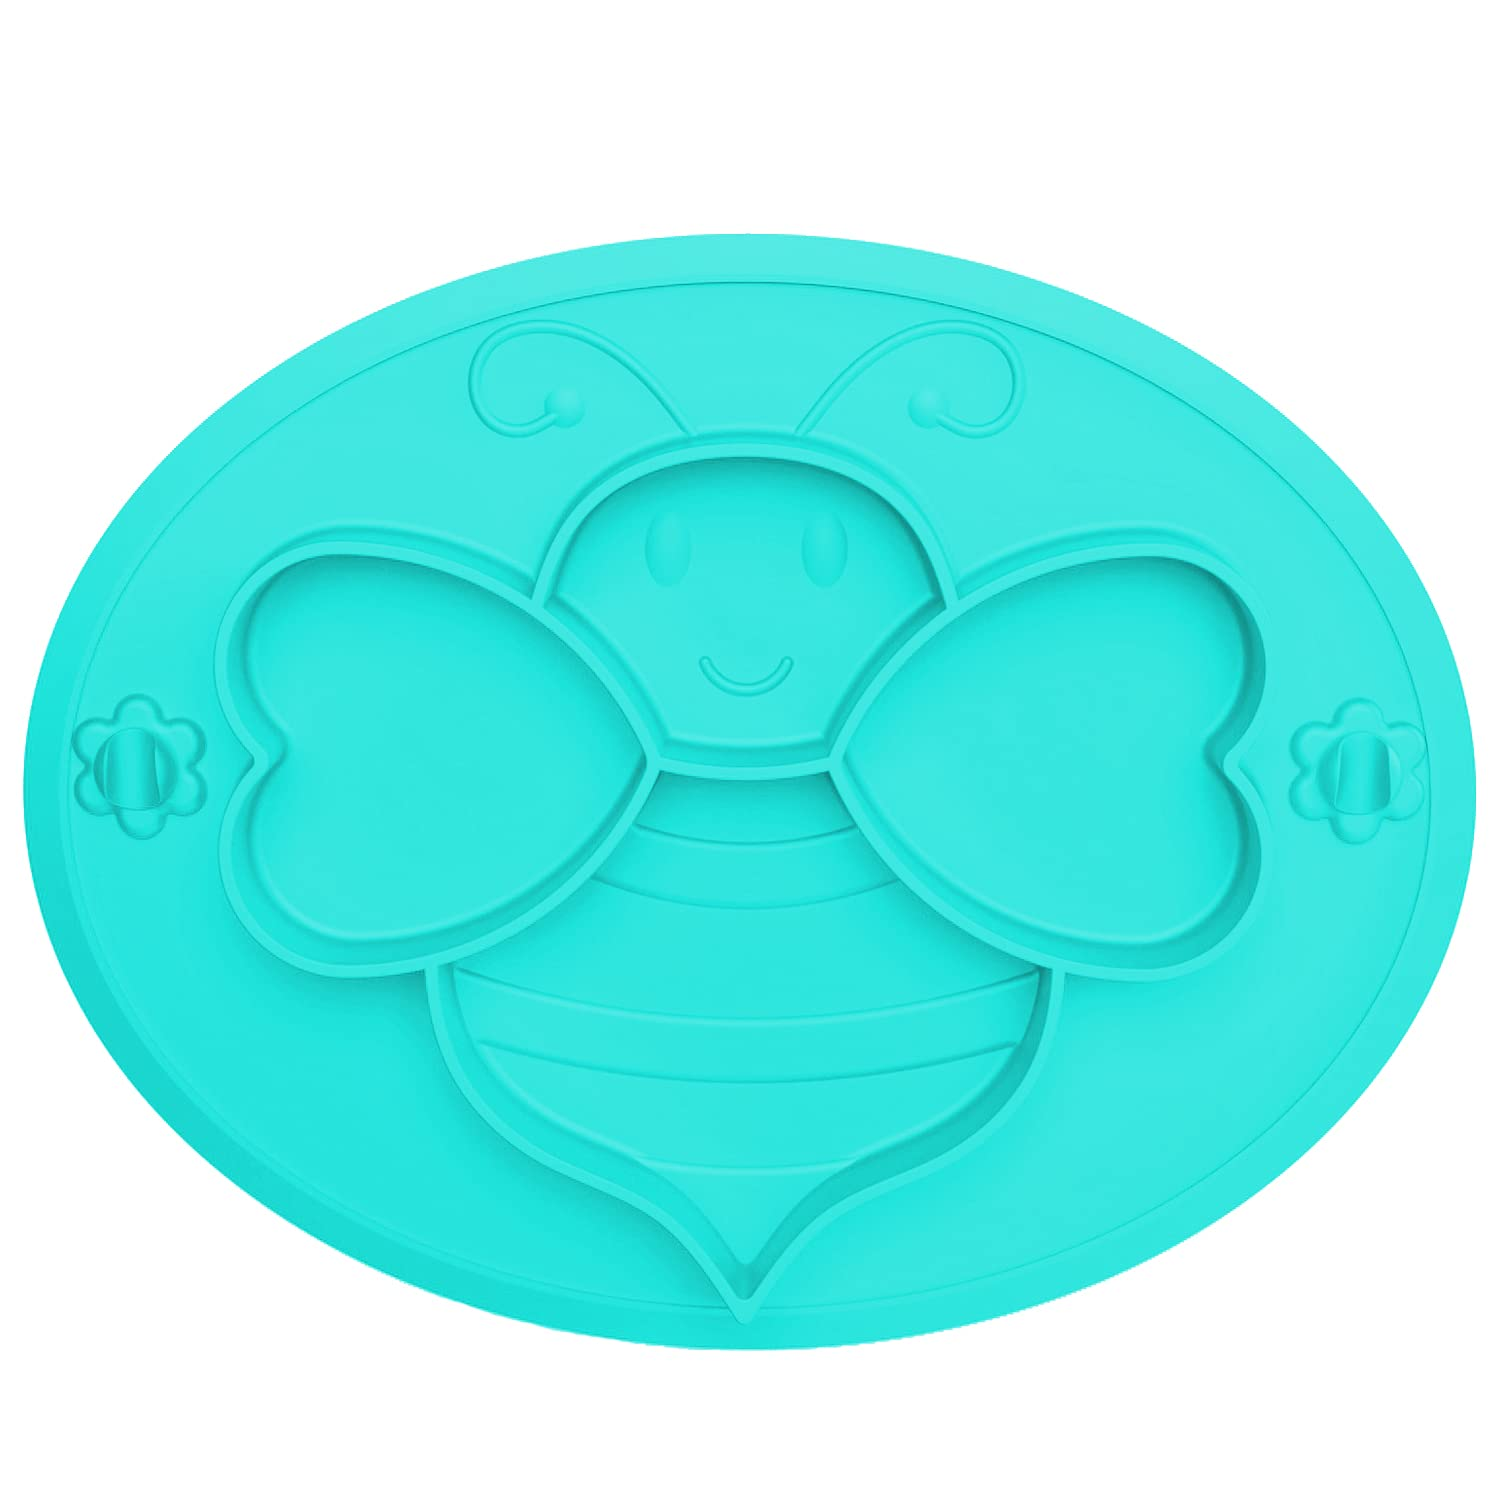 Silicone Suction Plates, Baby Plates, Divided Bee Design Plate for Baby Kids Toddler Food, BPA-Free, Non-Slip, Unbreakable Portable Dinner Toddler Plates (Light Green)